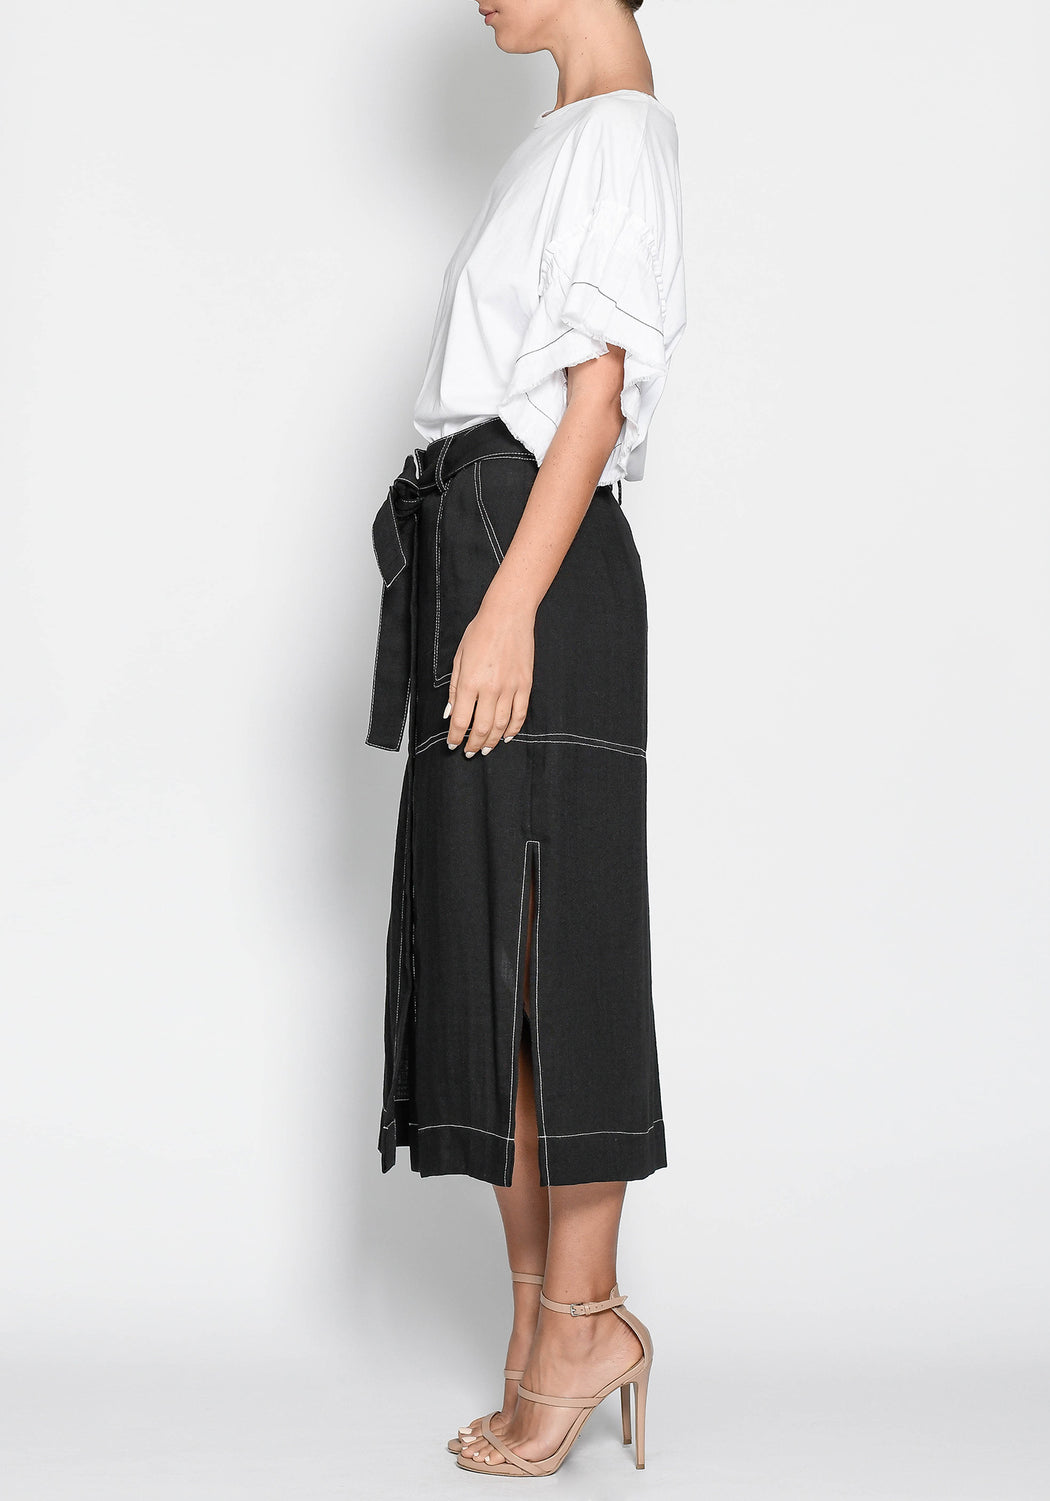 Lyon Topstitch Skirt